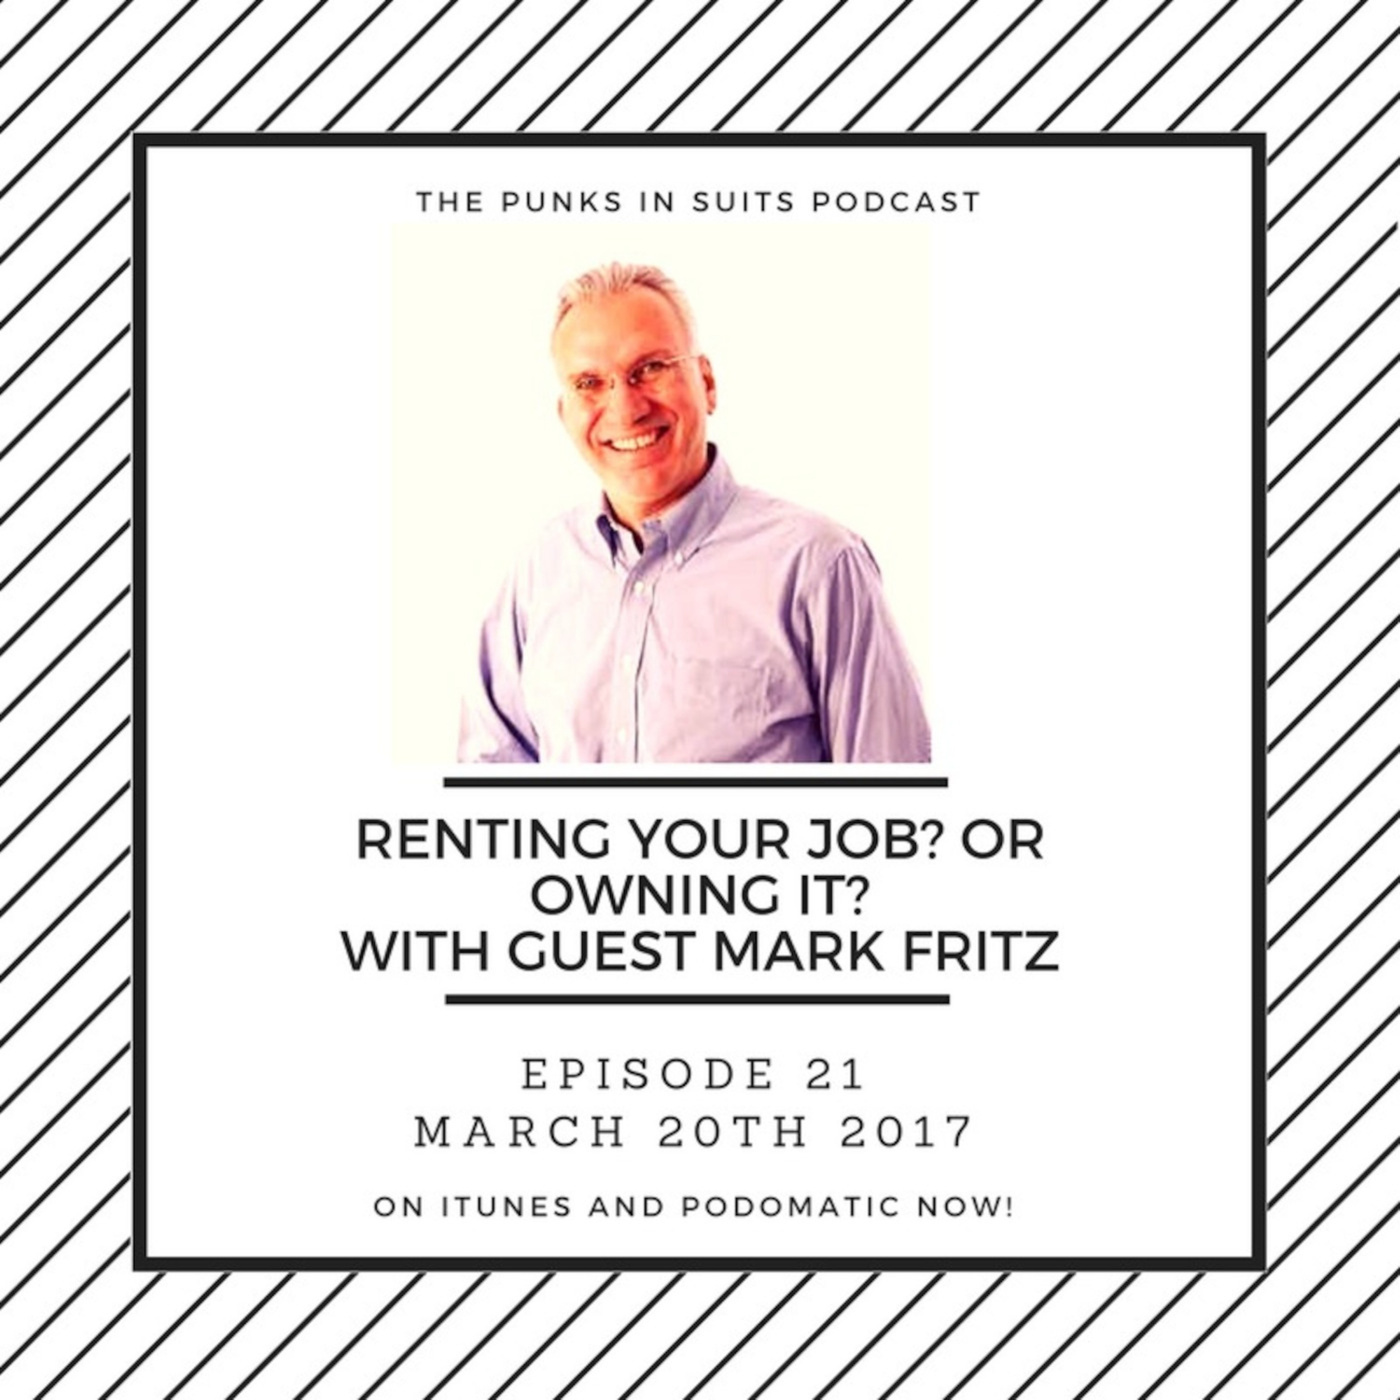 Episode 21: Renting your job, or owning it? With guest, Mark Fritz